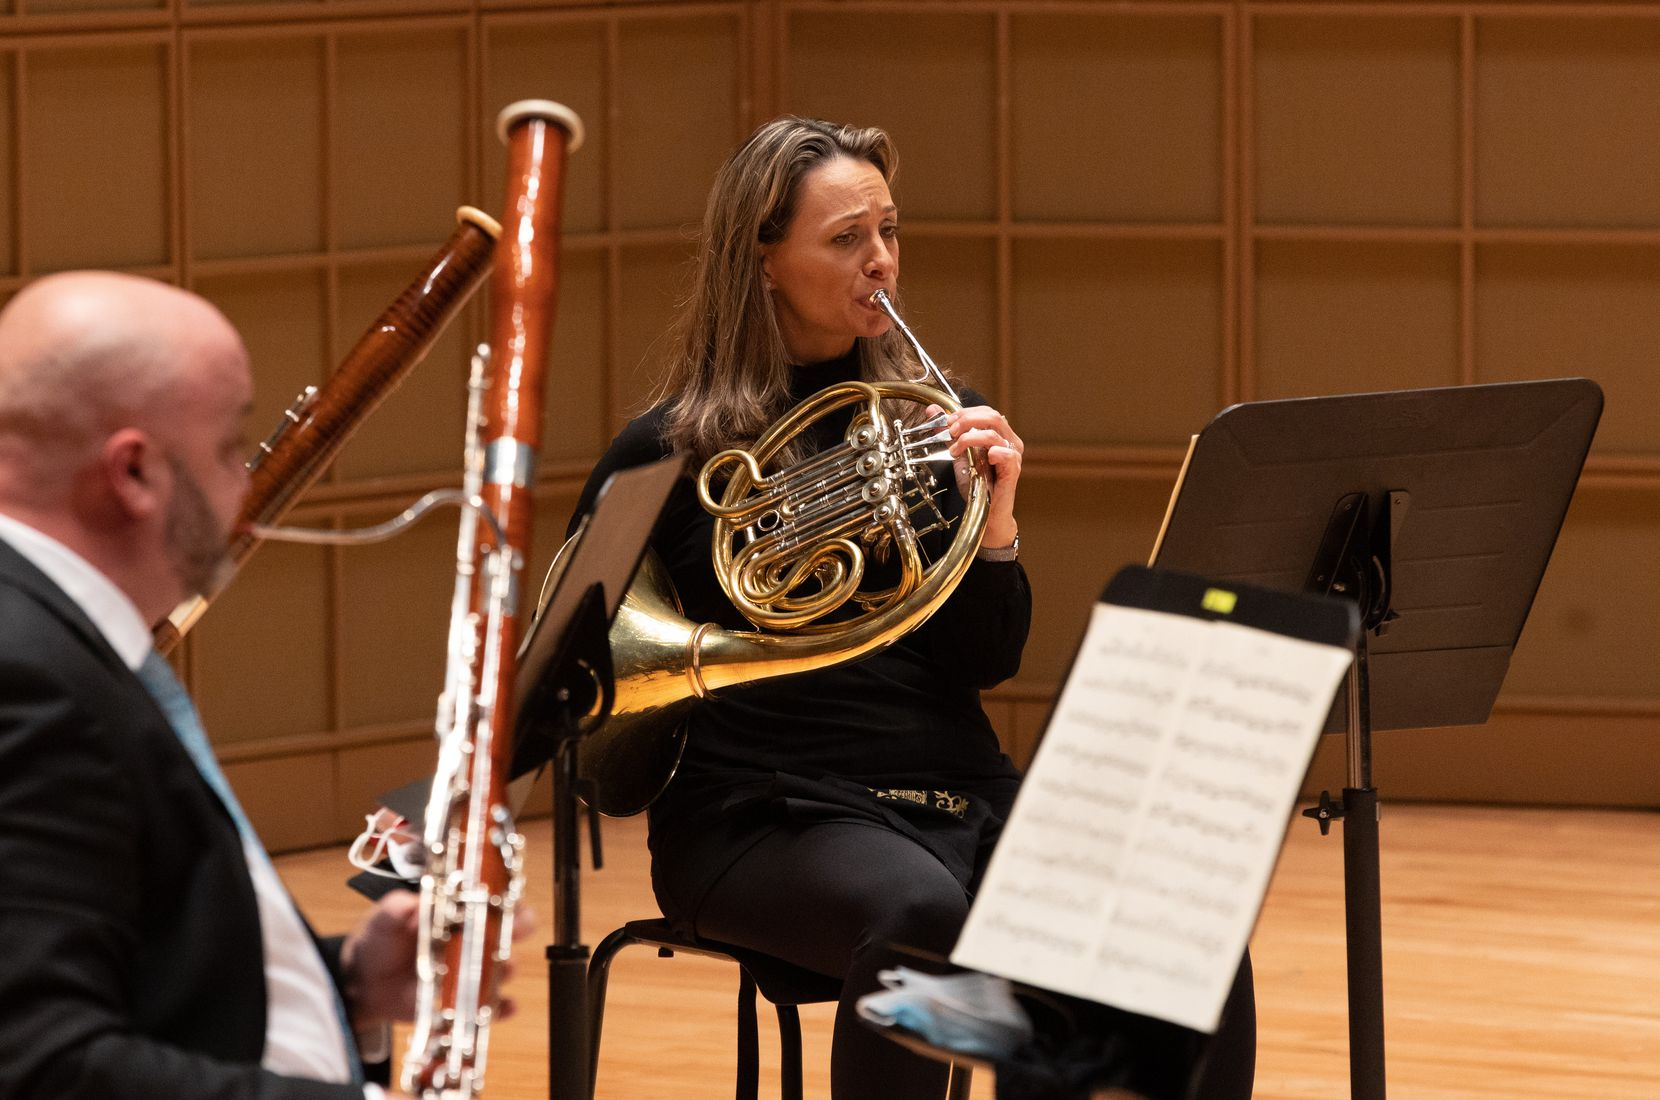 Haley Hoops is pictured during a Dallas Symphony Orchestra performance of the Mozart Serenade in C minor, K. 388 for wind octet, part of their 2020 Summer Chamber Music series at the Morton H. Meyerson Symphony Center in Dallas, June 13, 2020.